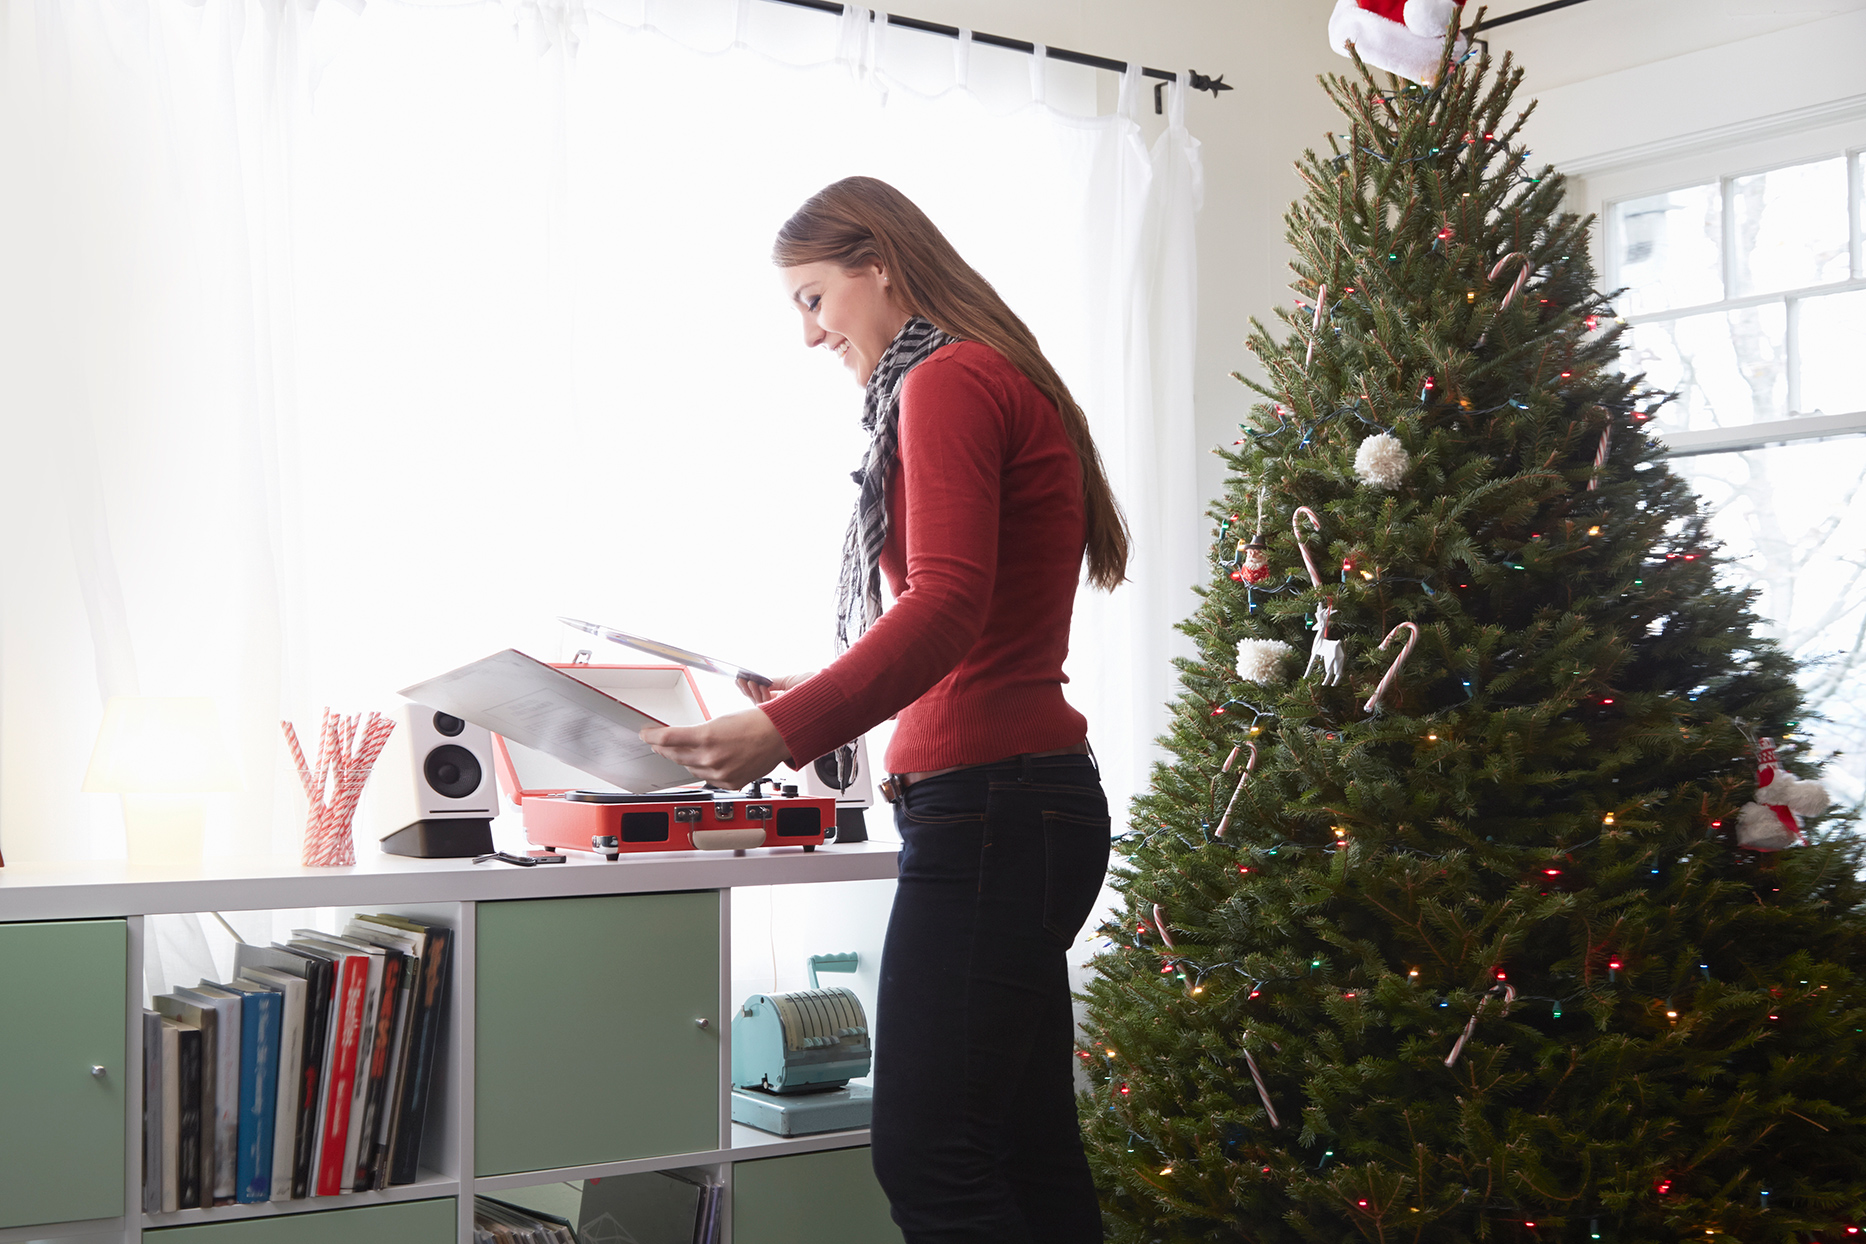 Person looking through records next to Christmas tree